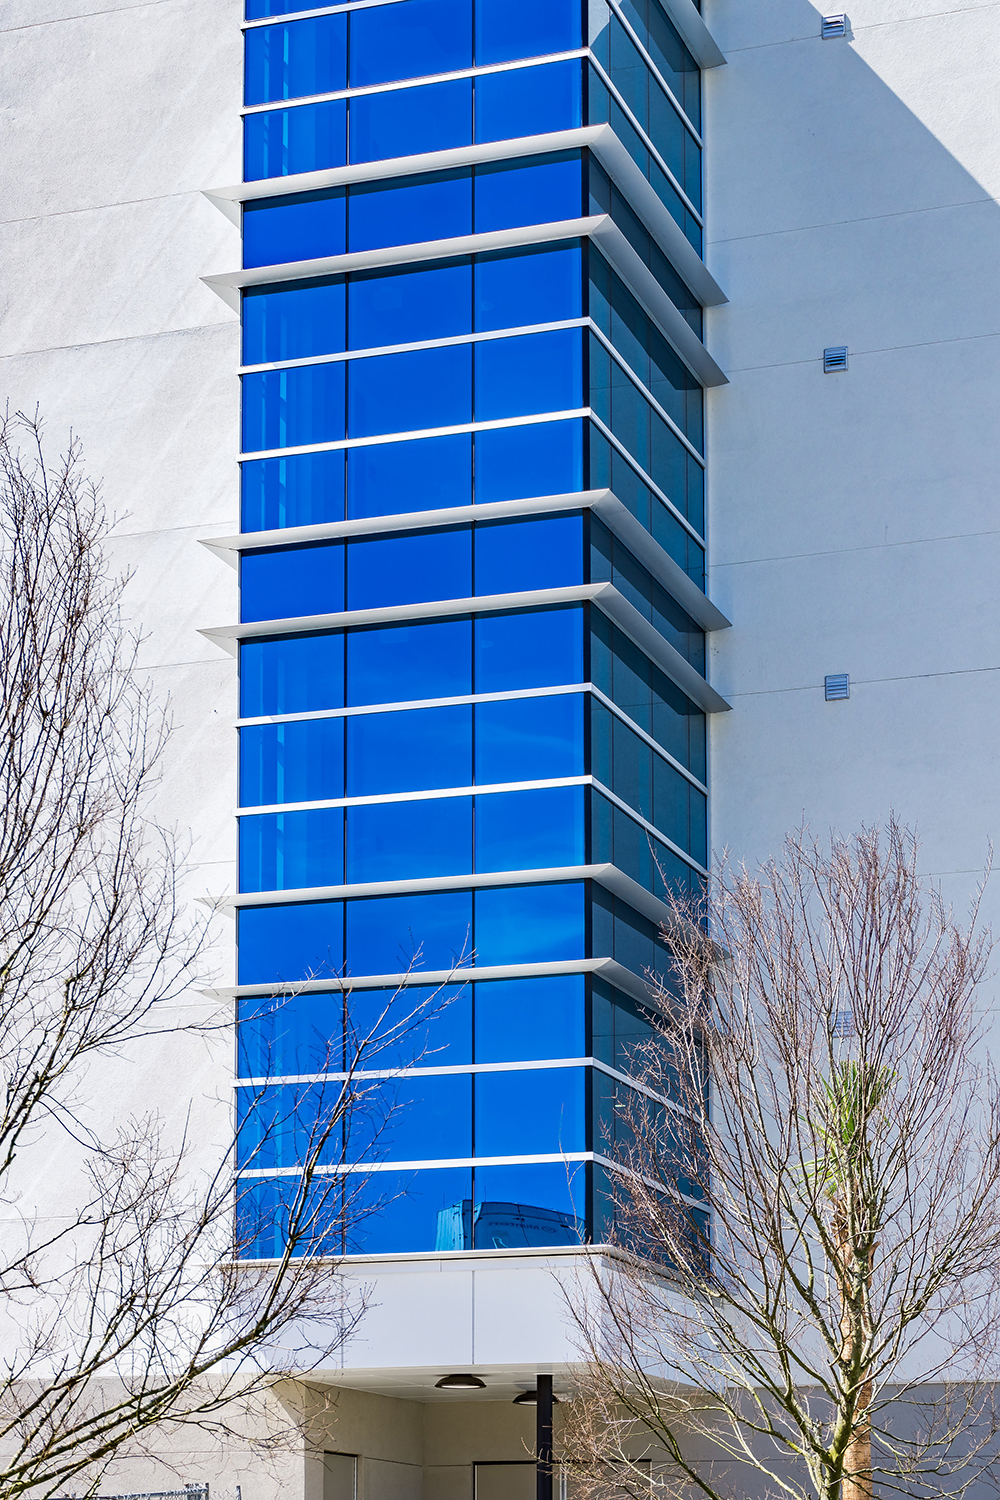 Collaborators of the Embry Riddle curtainwall and entrance project selected Tubelite's reliable 400 Curtainwall and 4500 Storefront Systems to complete this project.  Photographer: Charles LeRette Photography